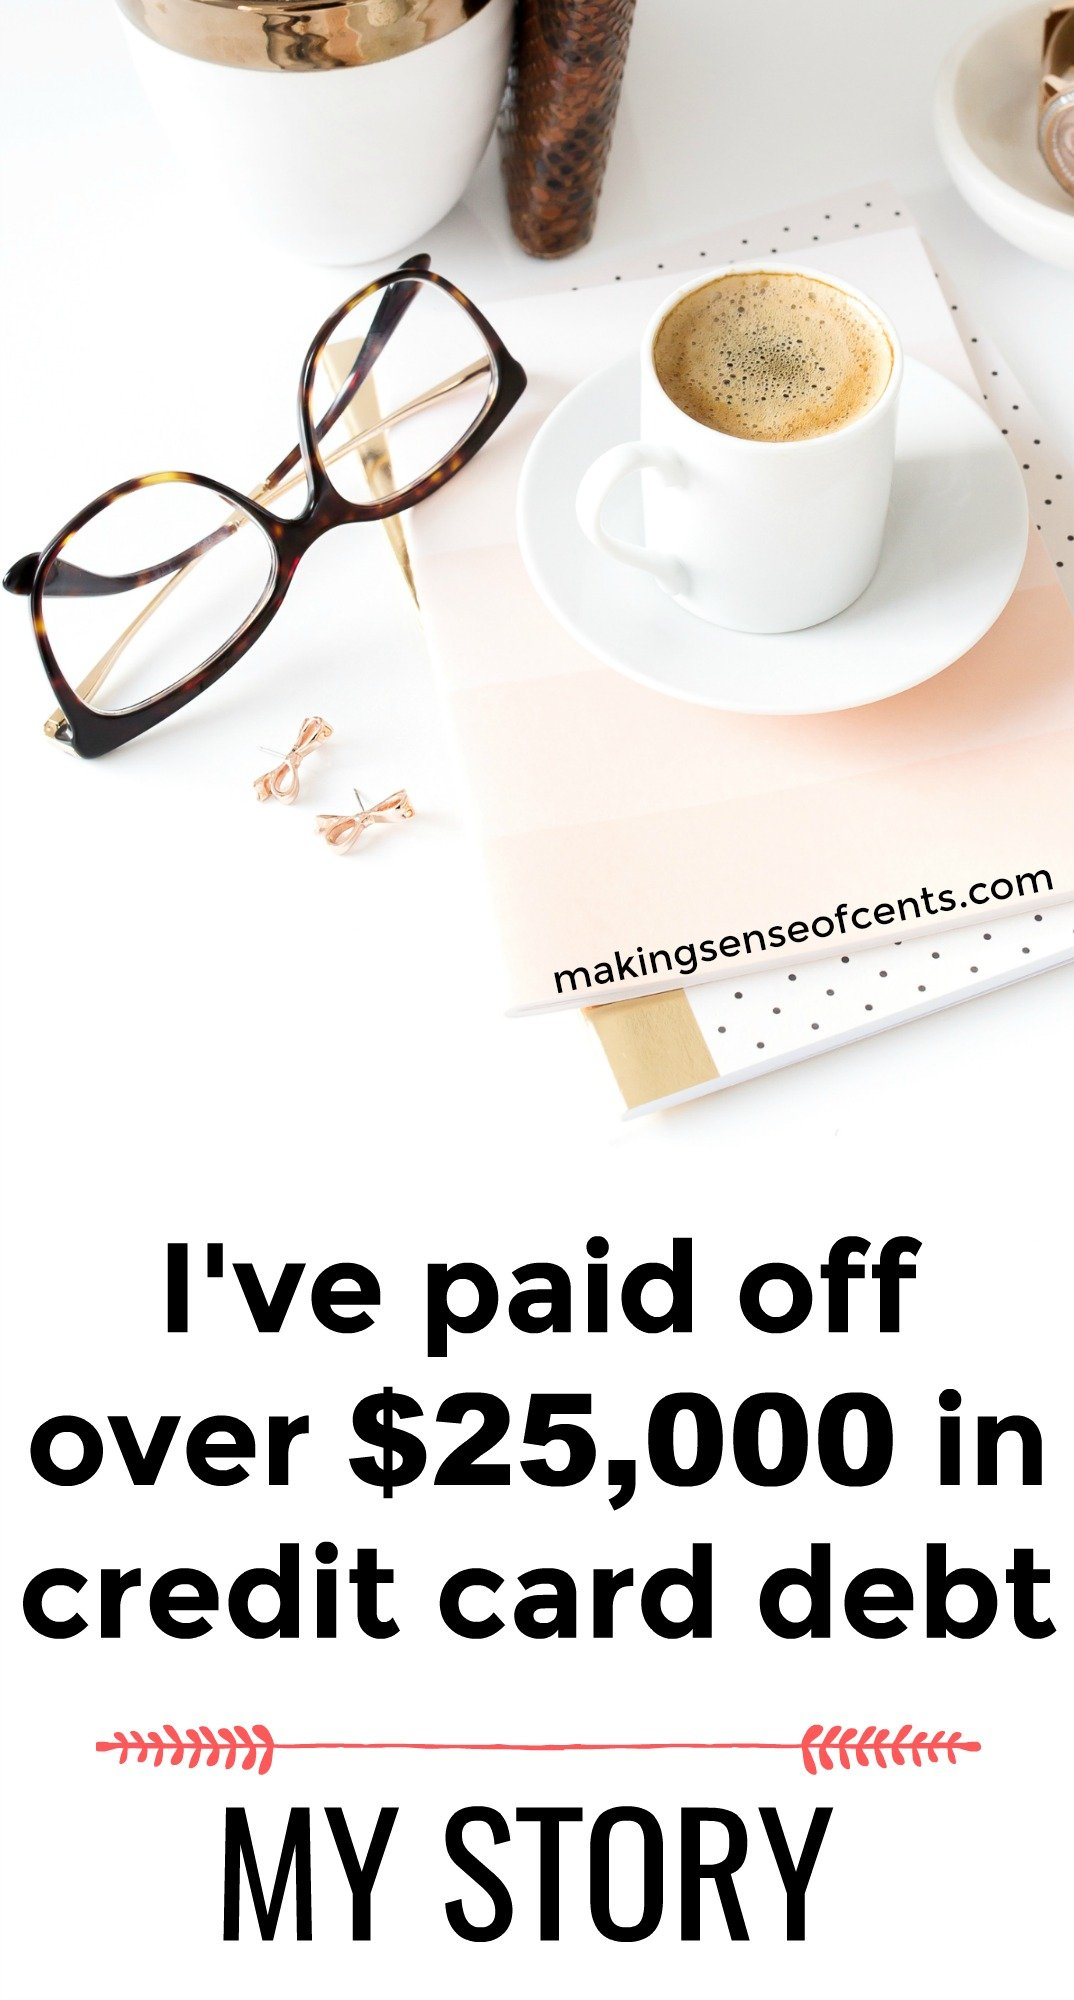 Find out how I've paid off $25,000 in credit card debt.